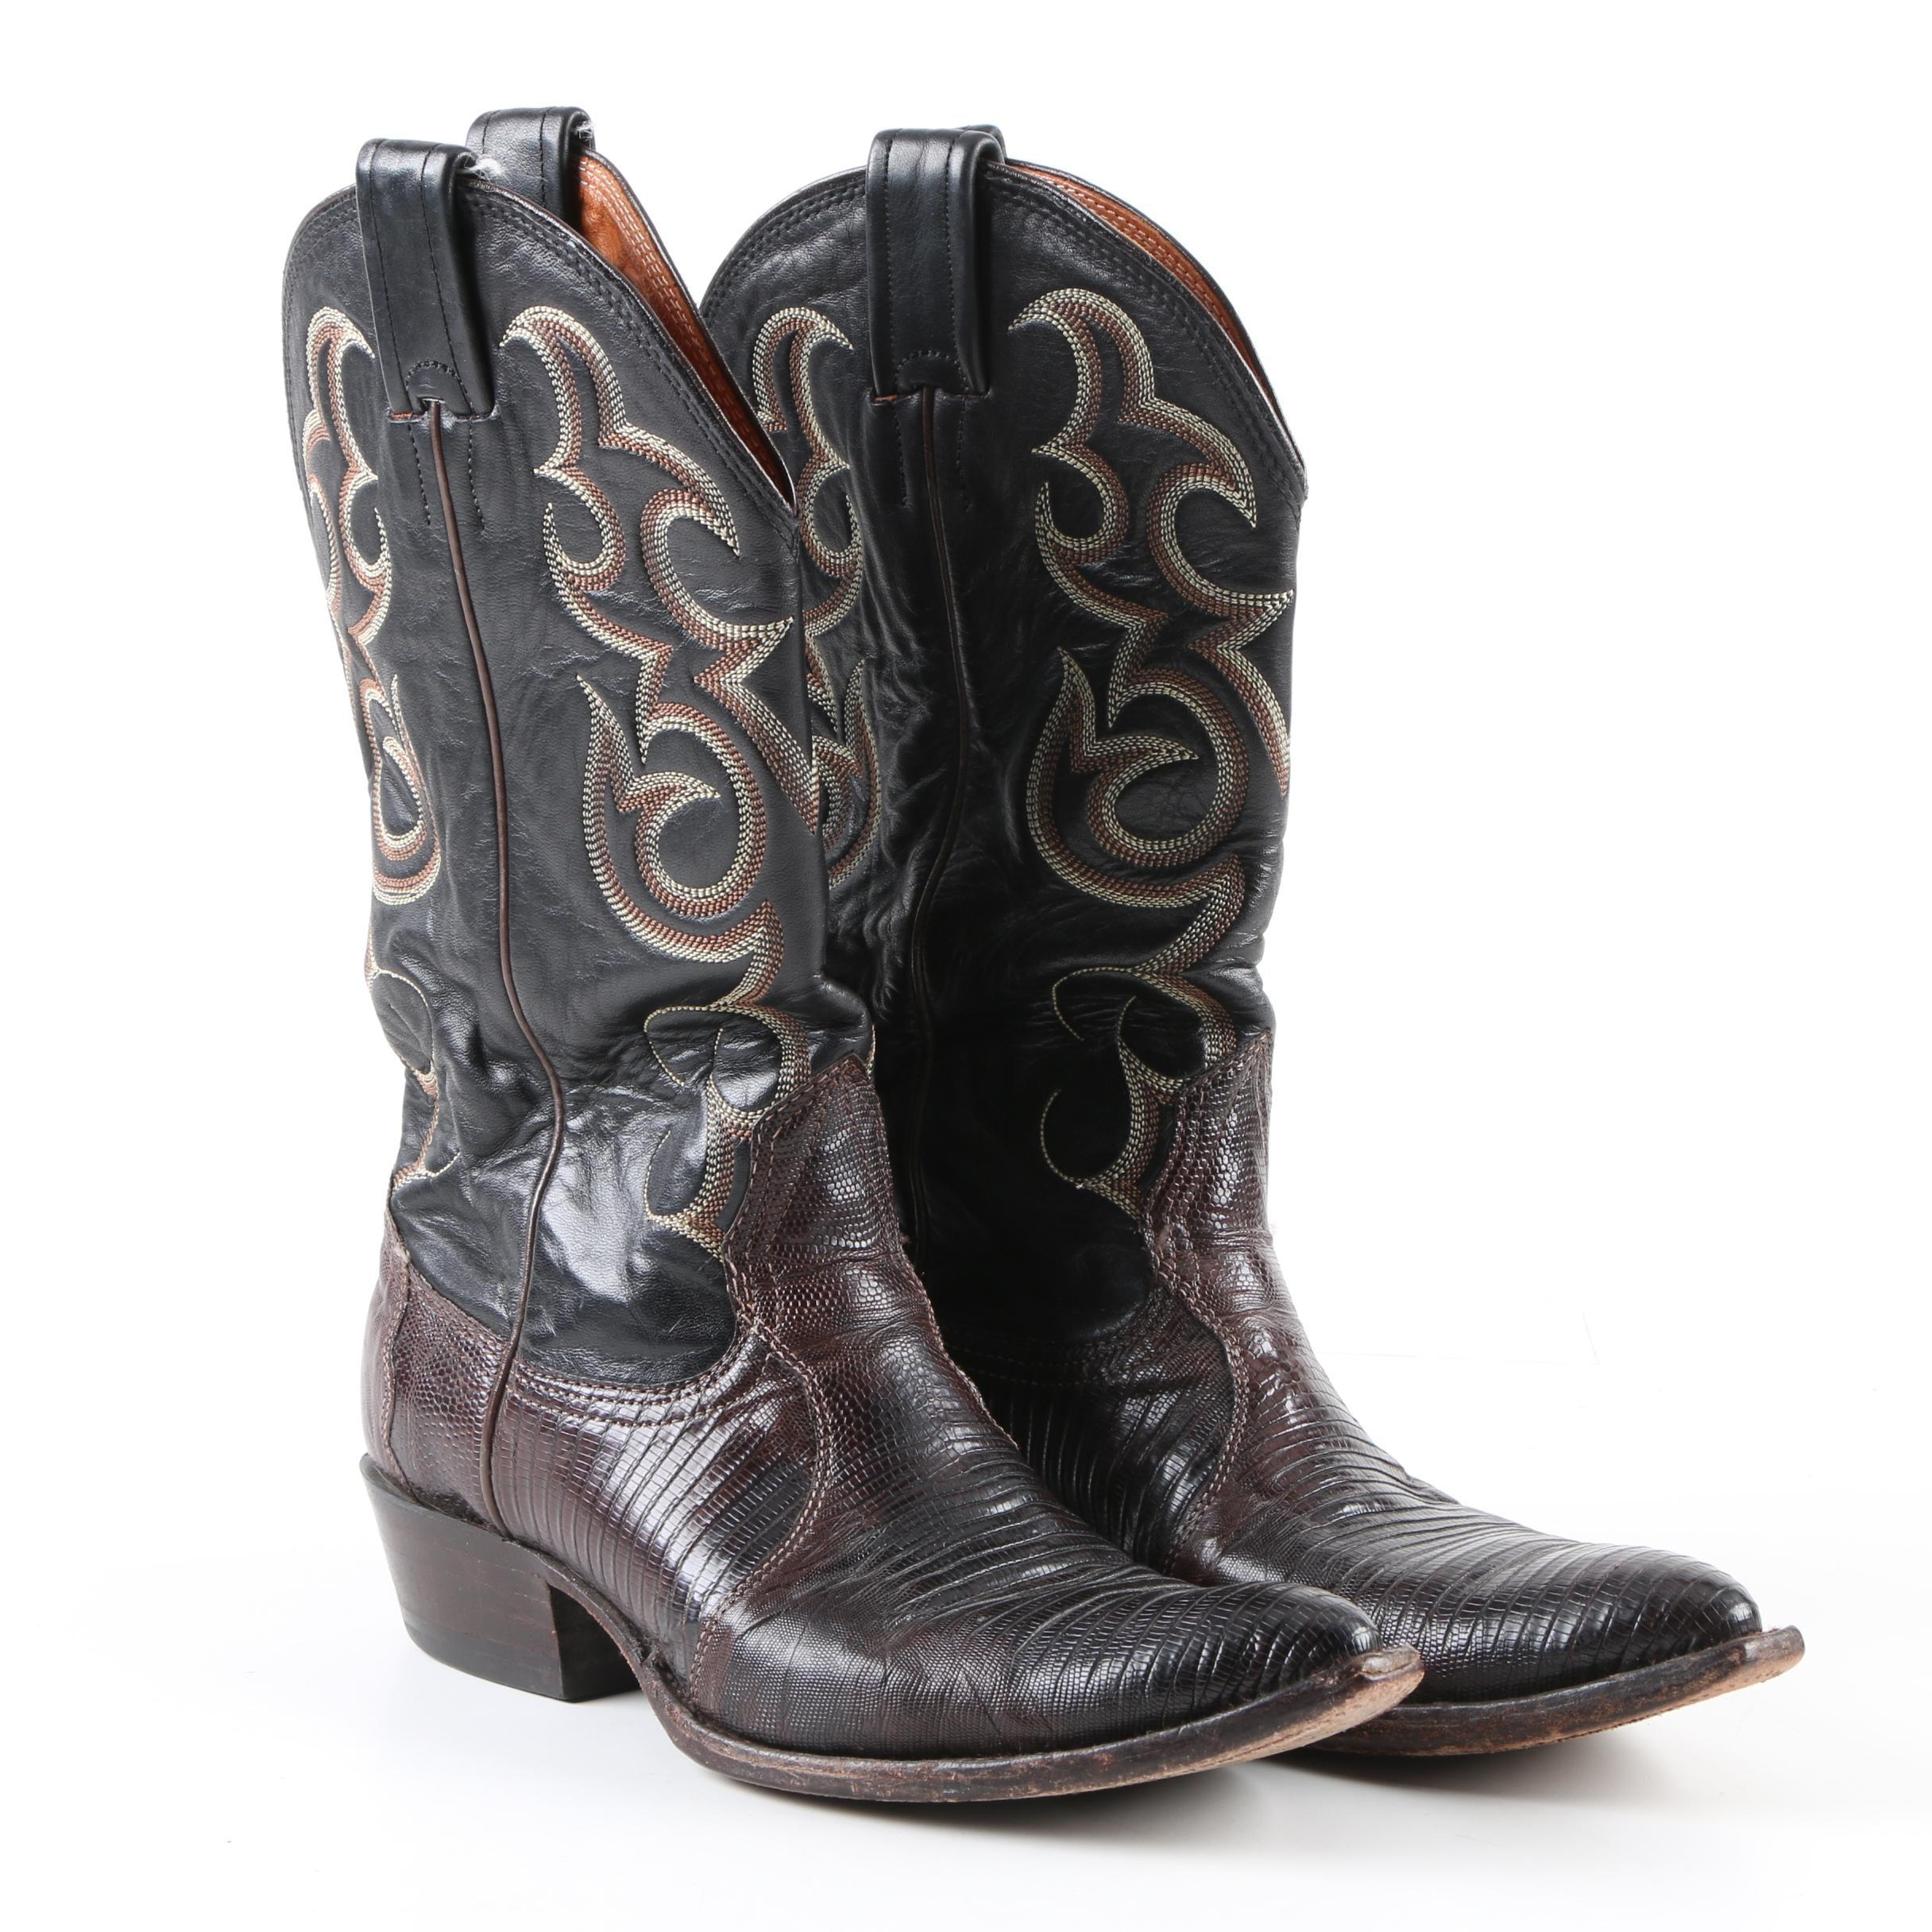 Women's Vintage Nocona Black and Brown Leather Western Boots